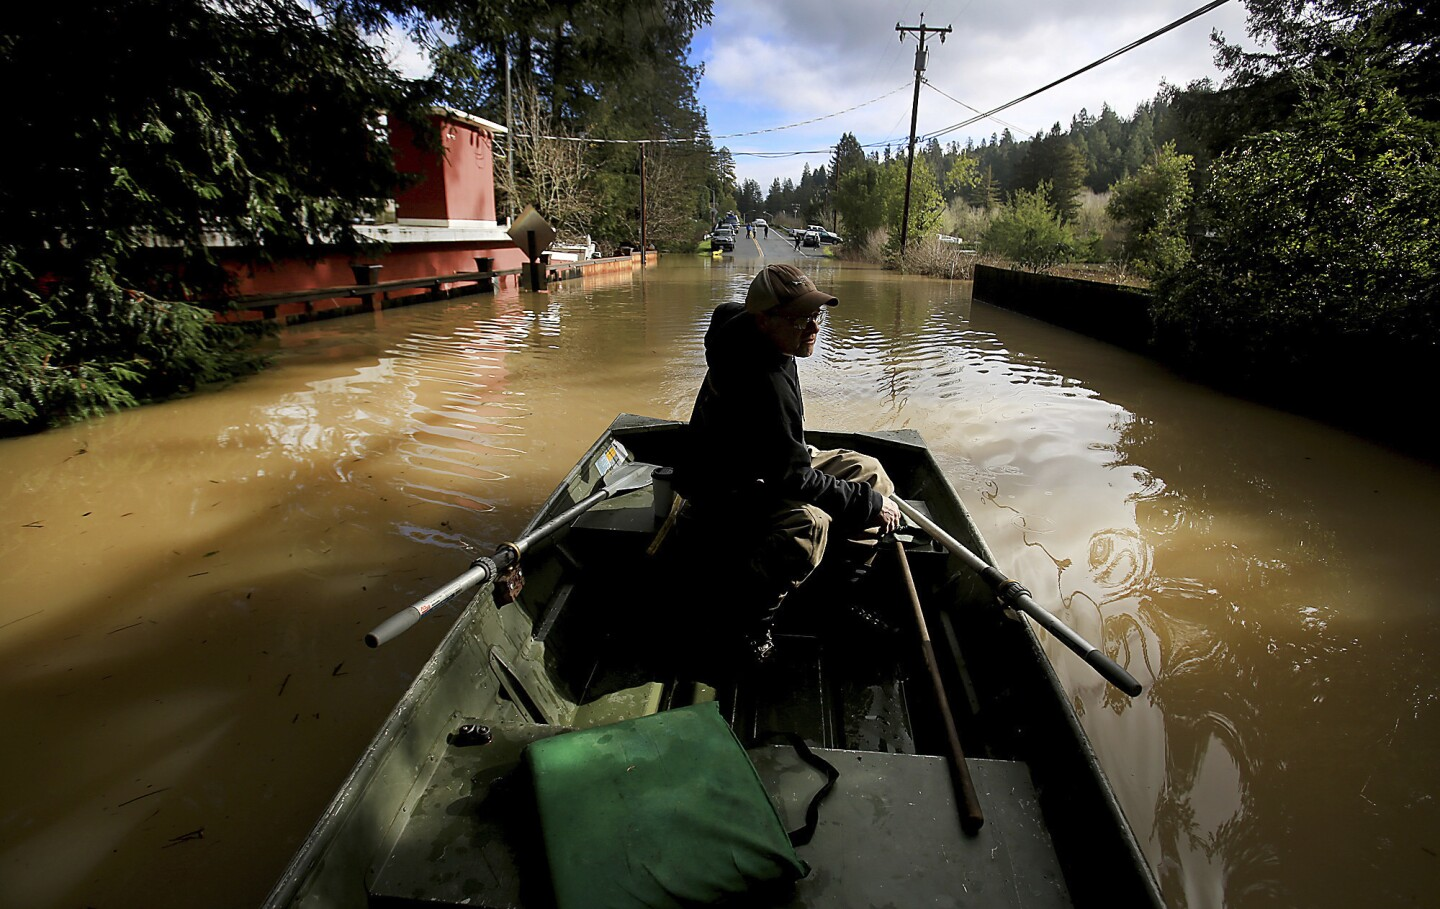 Flooding in Northern California